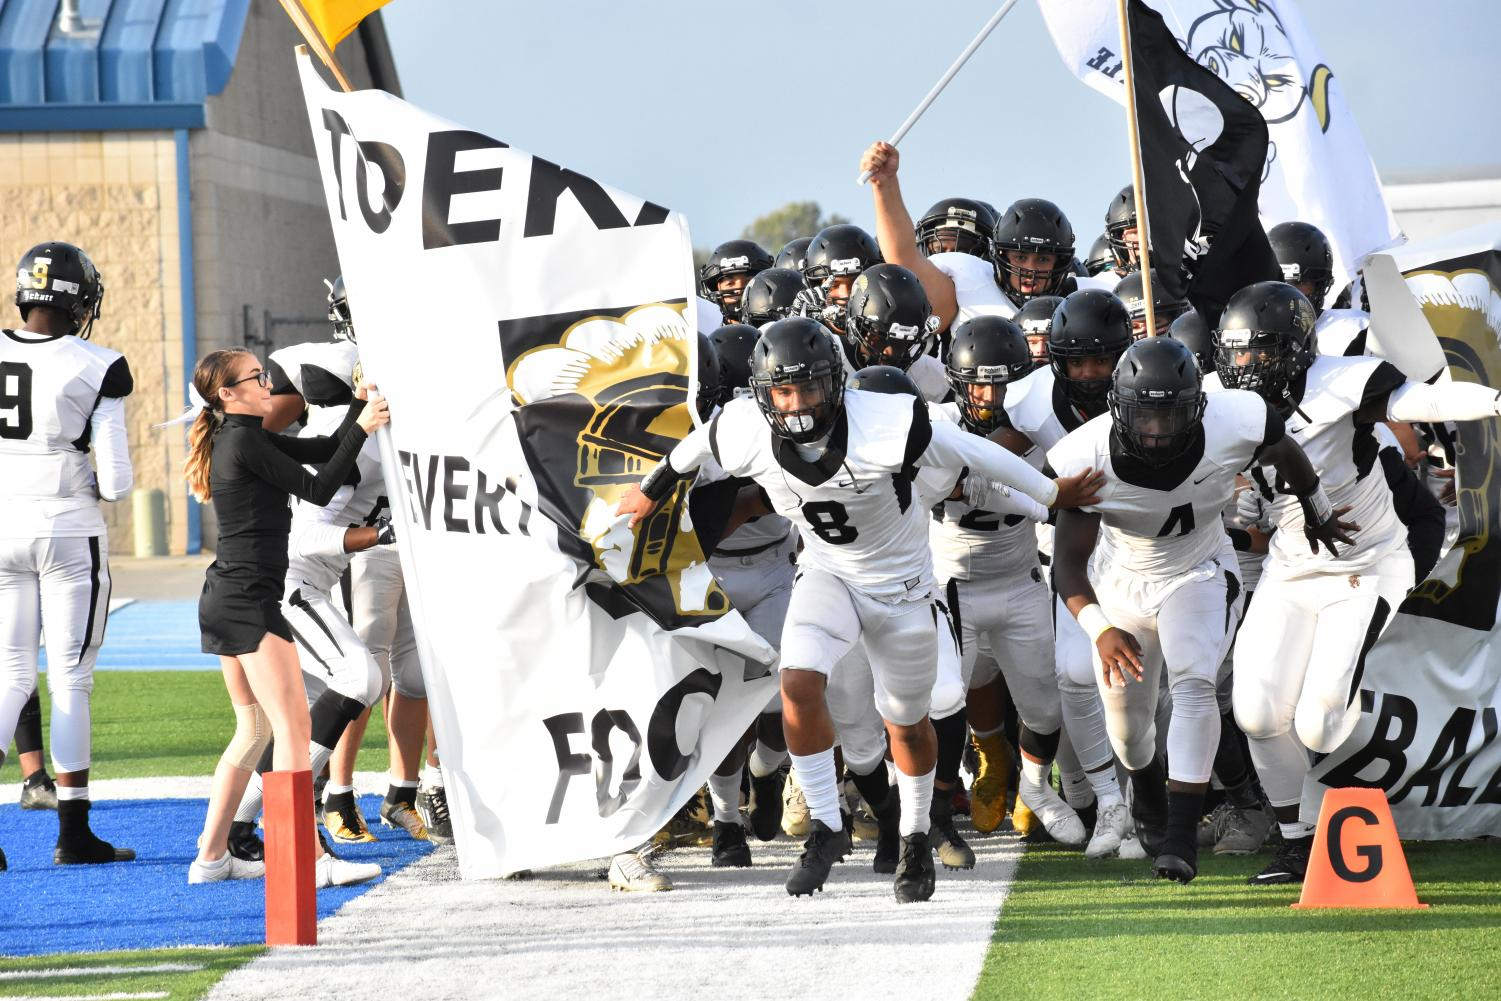 The+football+team+runs+out+onto+the+field+before+their+game+against+Washburn+Rural.+